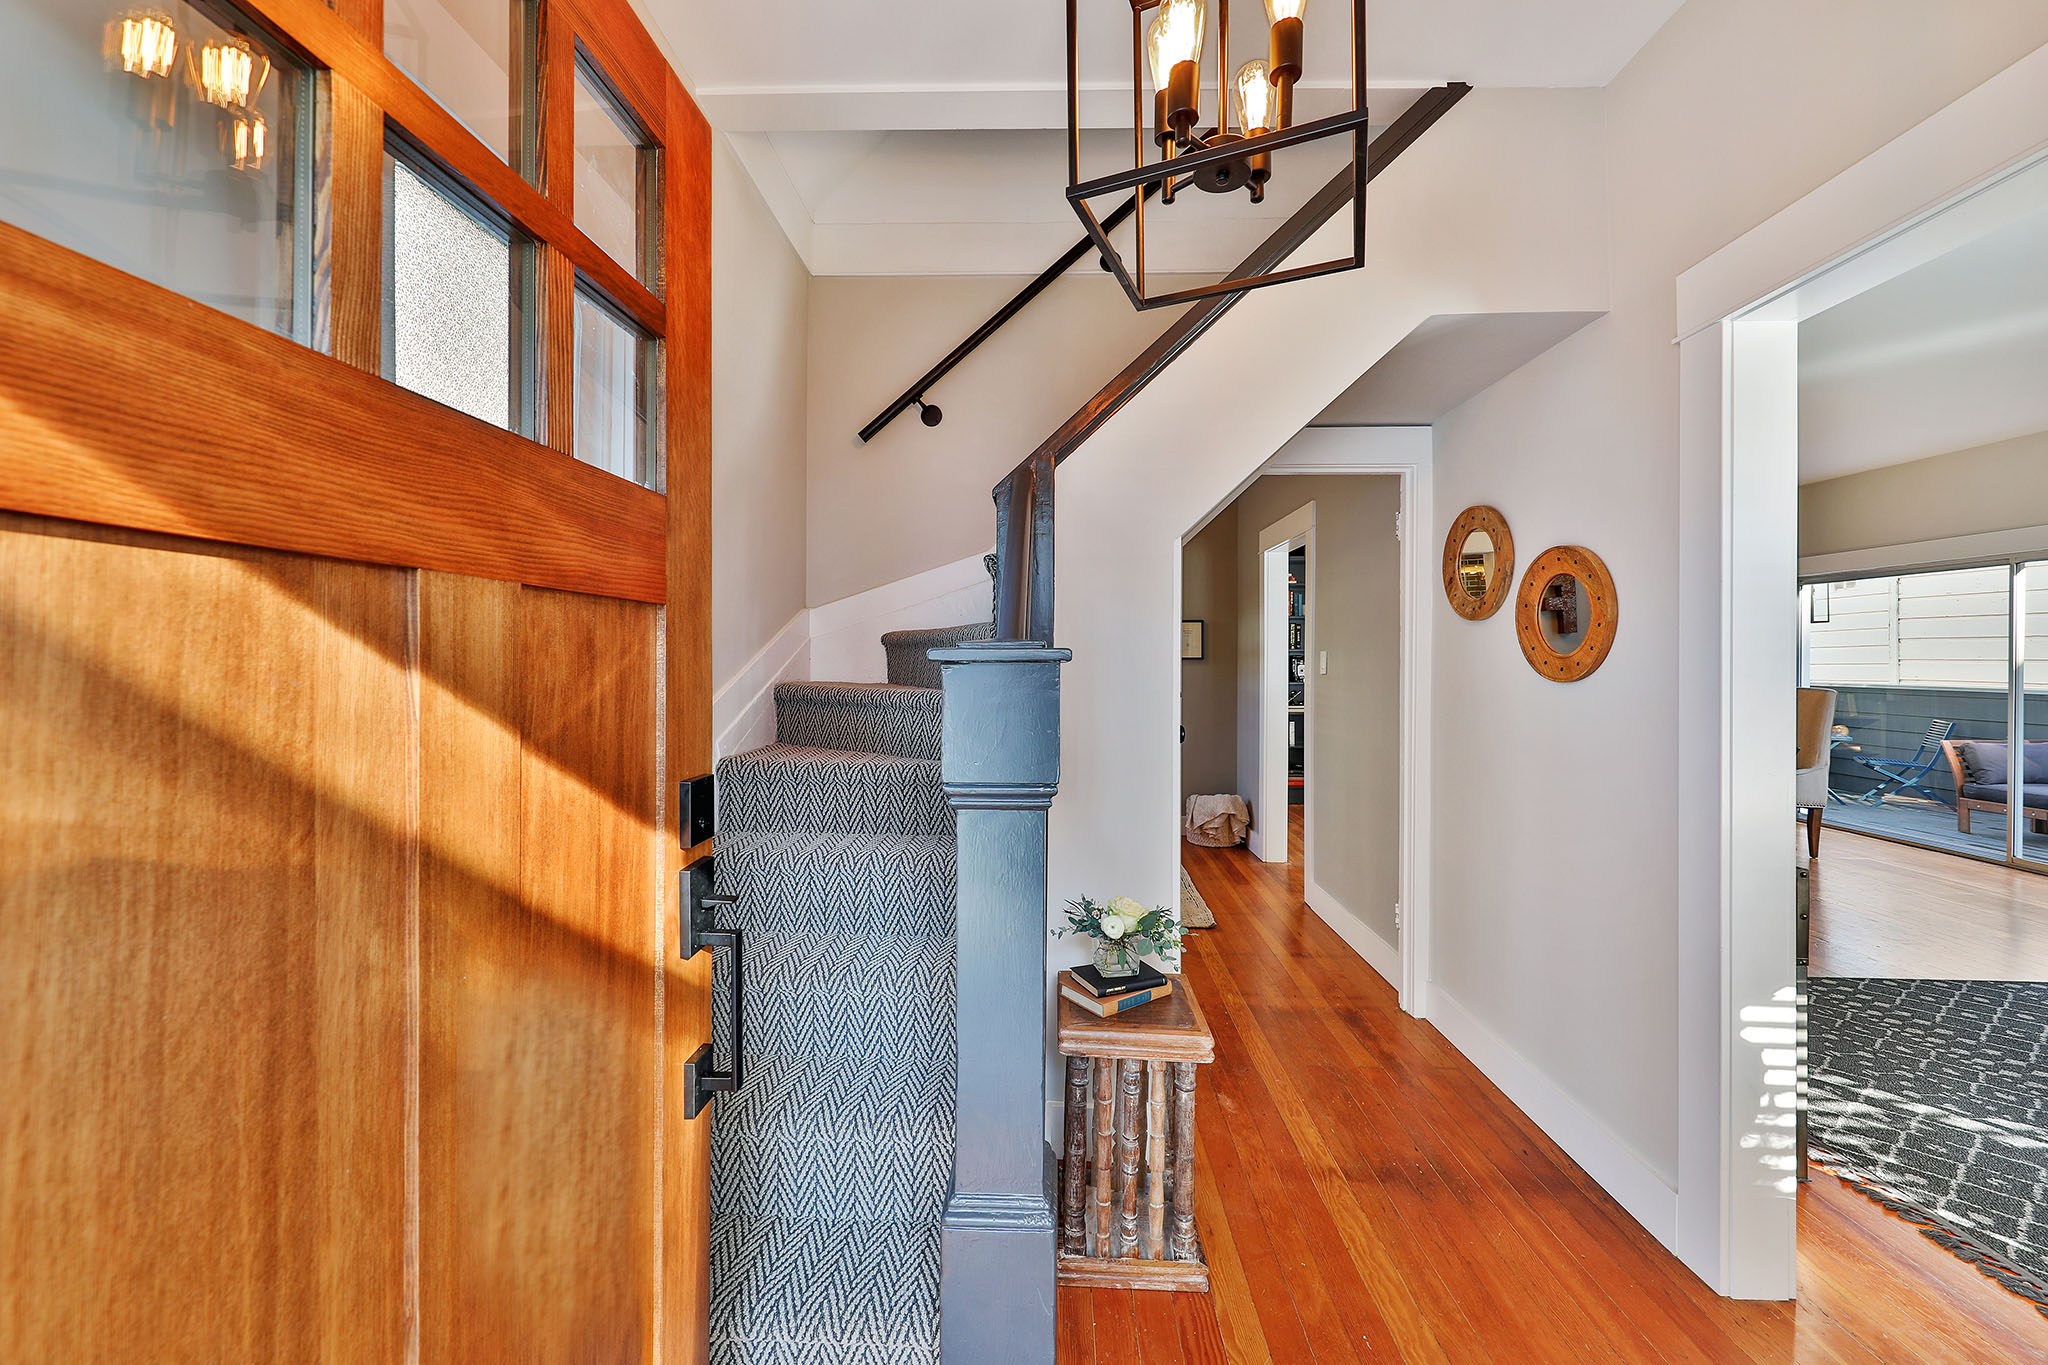 SF Real Estate - view through front door - stairs and hallway